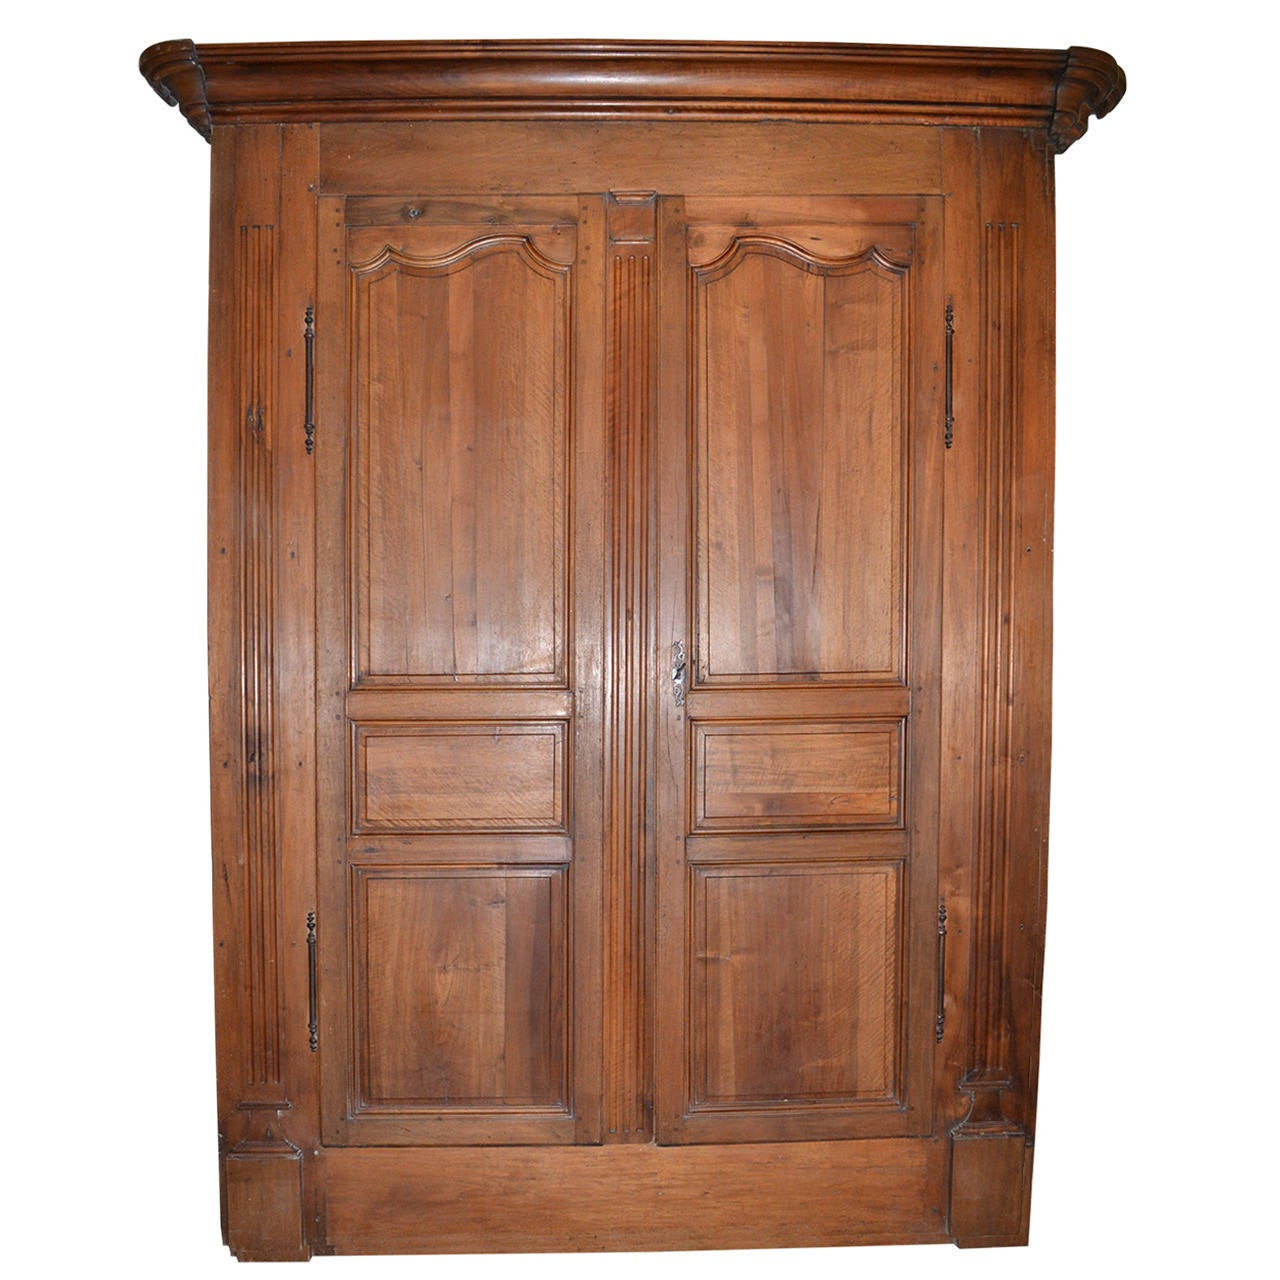 Antique Walnut French Armoire Doors with Original Frame, Crown & Hardware